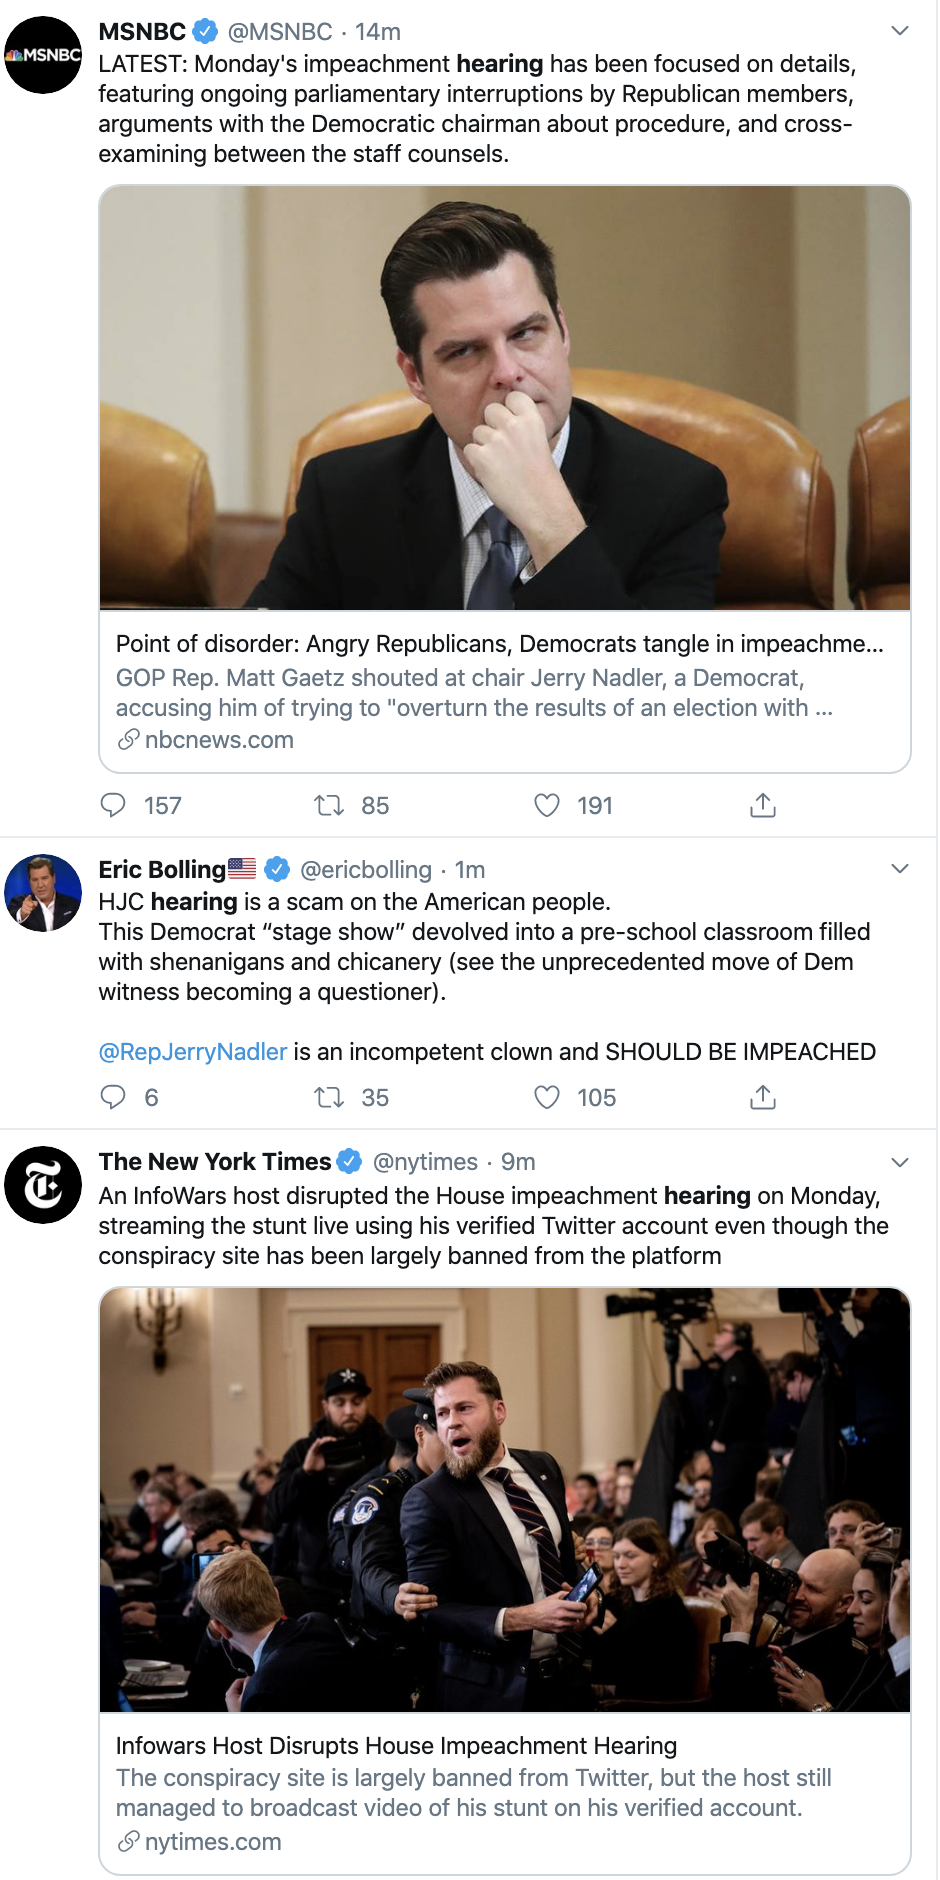 Screen-Shot-2019-12-09-at-1.09.29-PM Republicans Go Full Swamp-Creature During Hearing Circus Act Corruption Featured Impeachment Investigation Top Stories